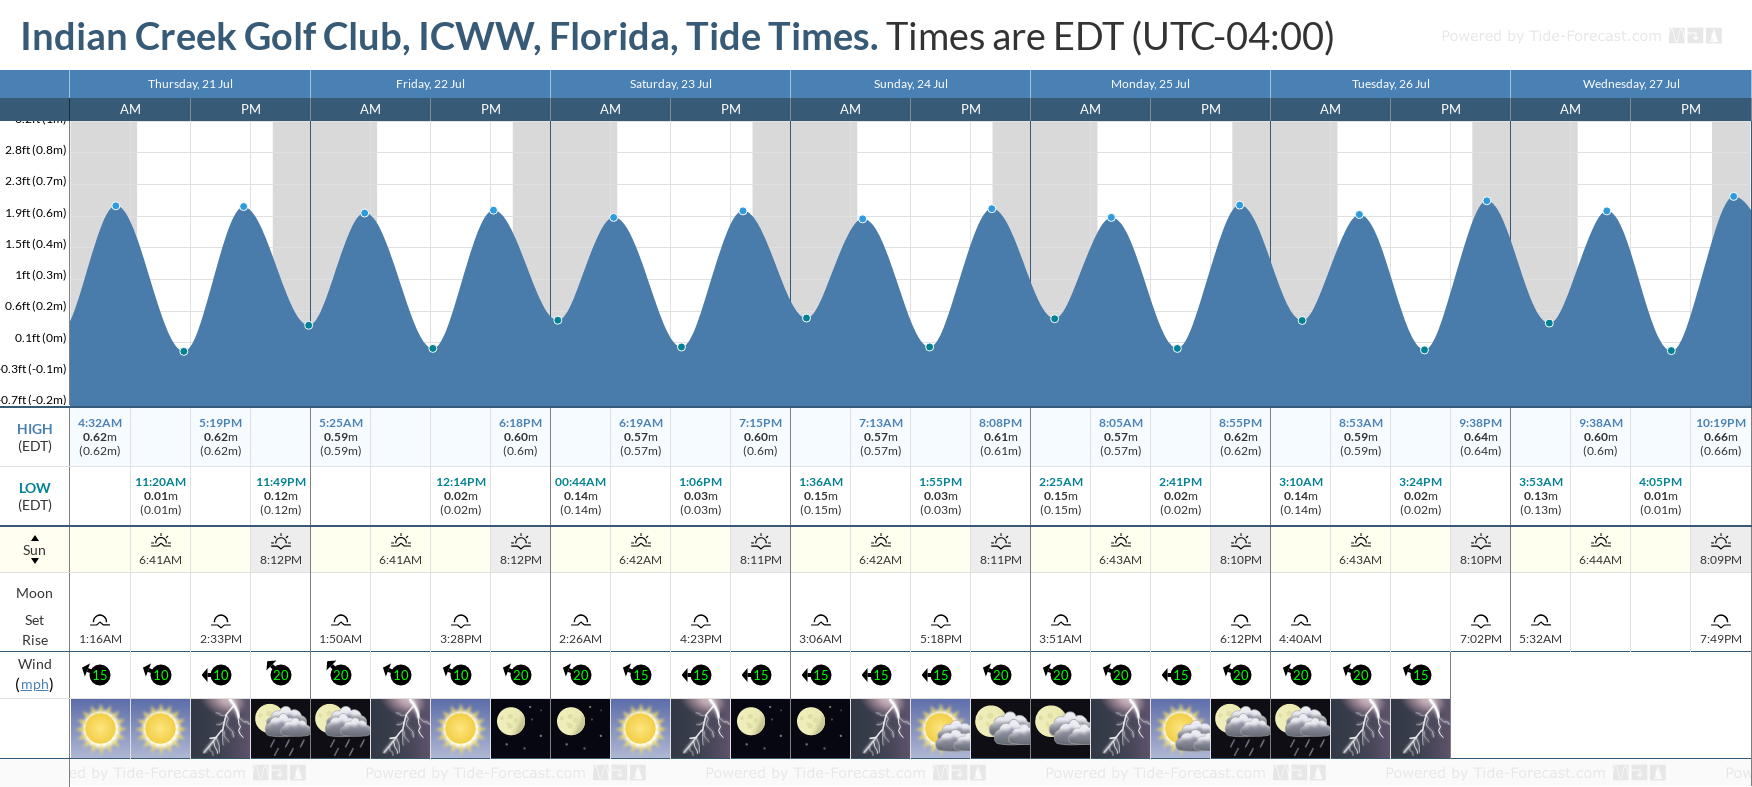 Indian Creek Golf Club, ICWW, Florida Tide Chart including high and low tide tide times for the next 7 days